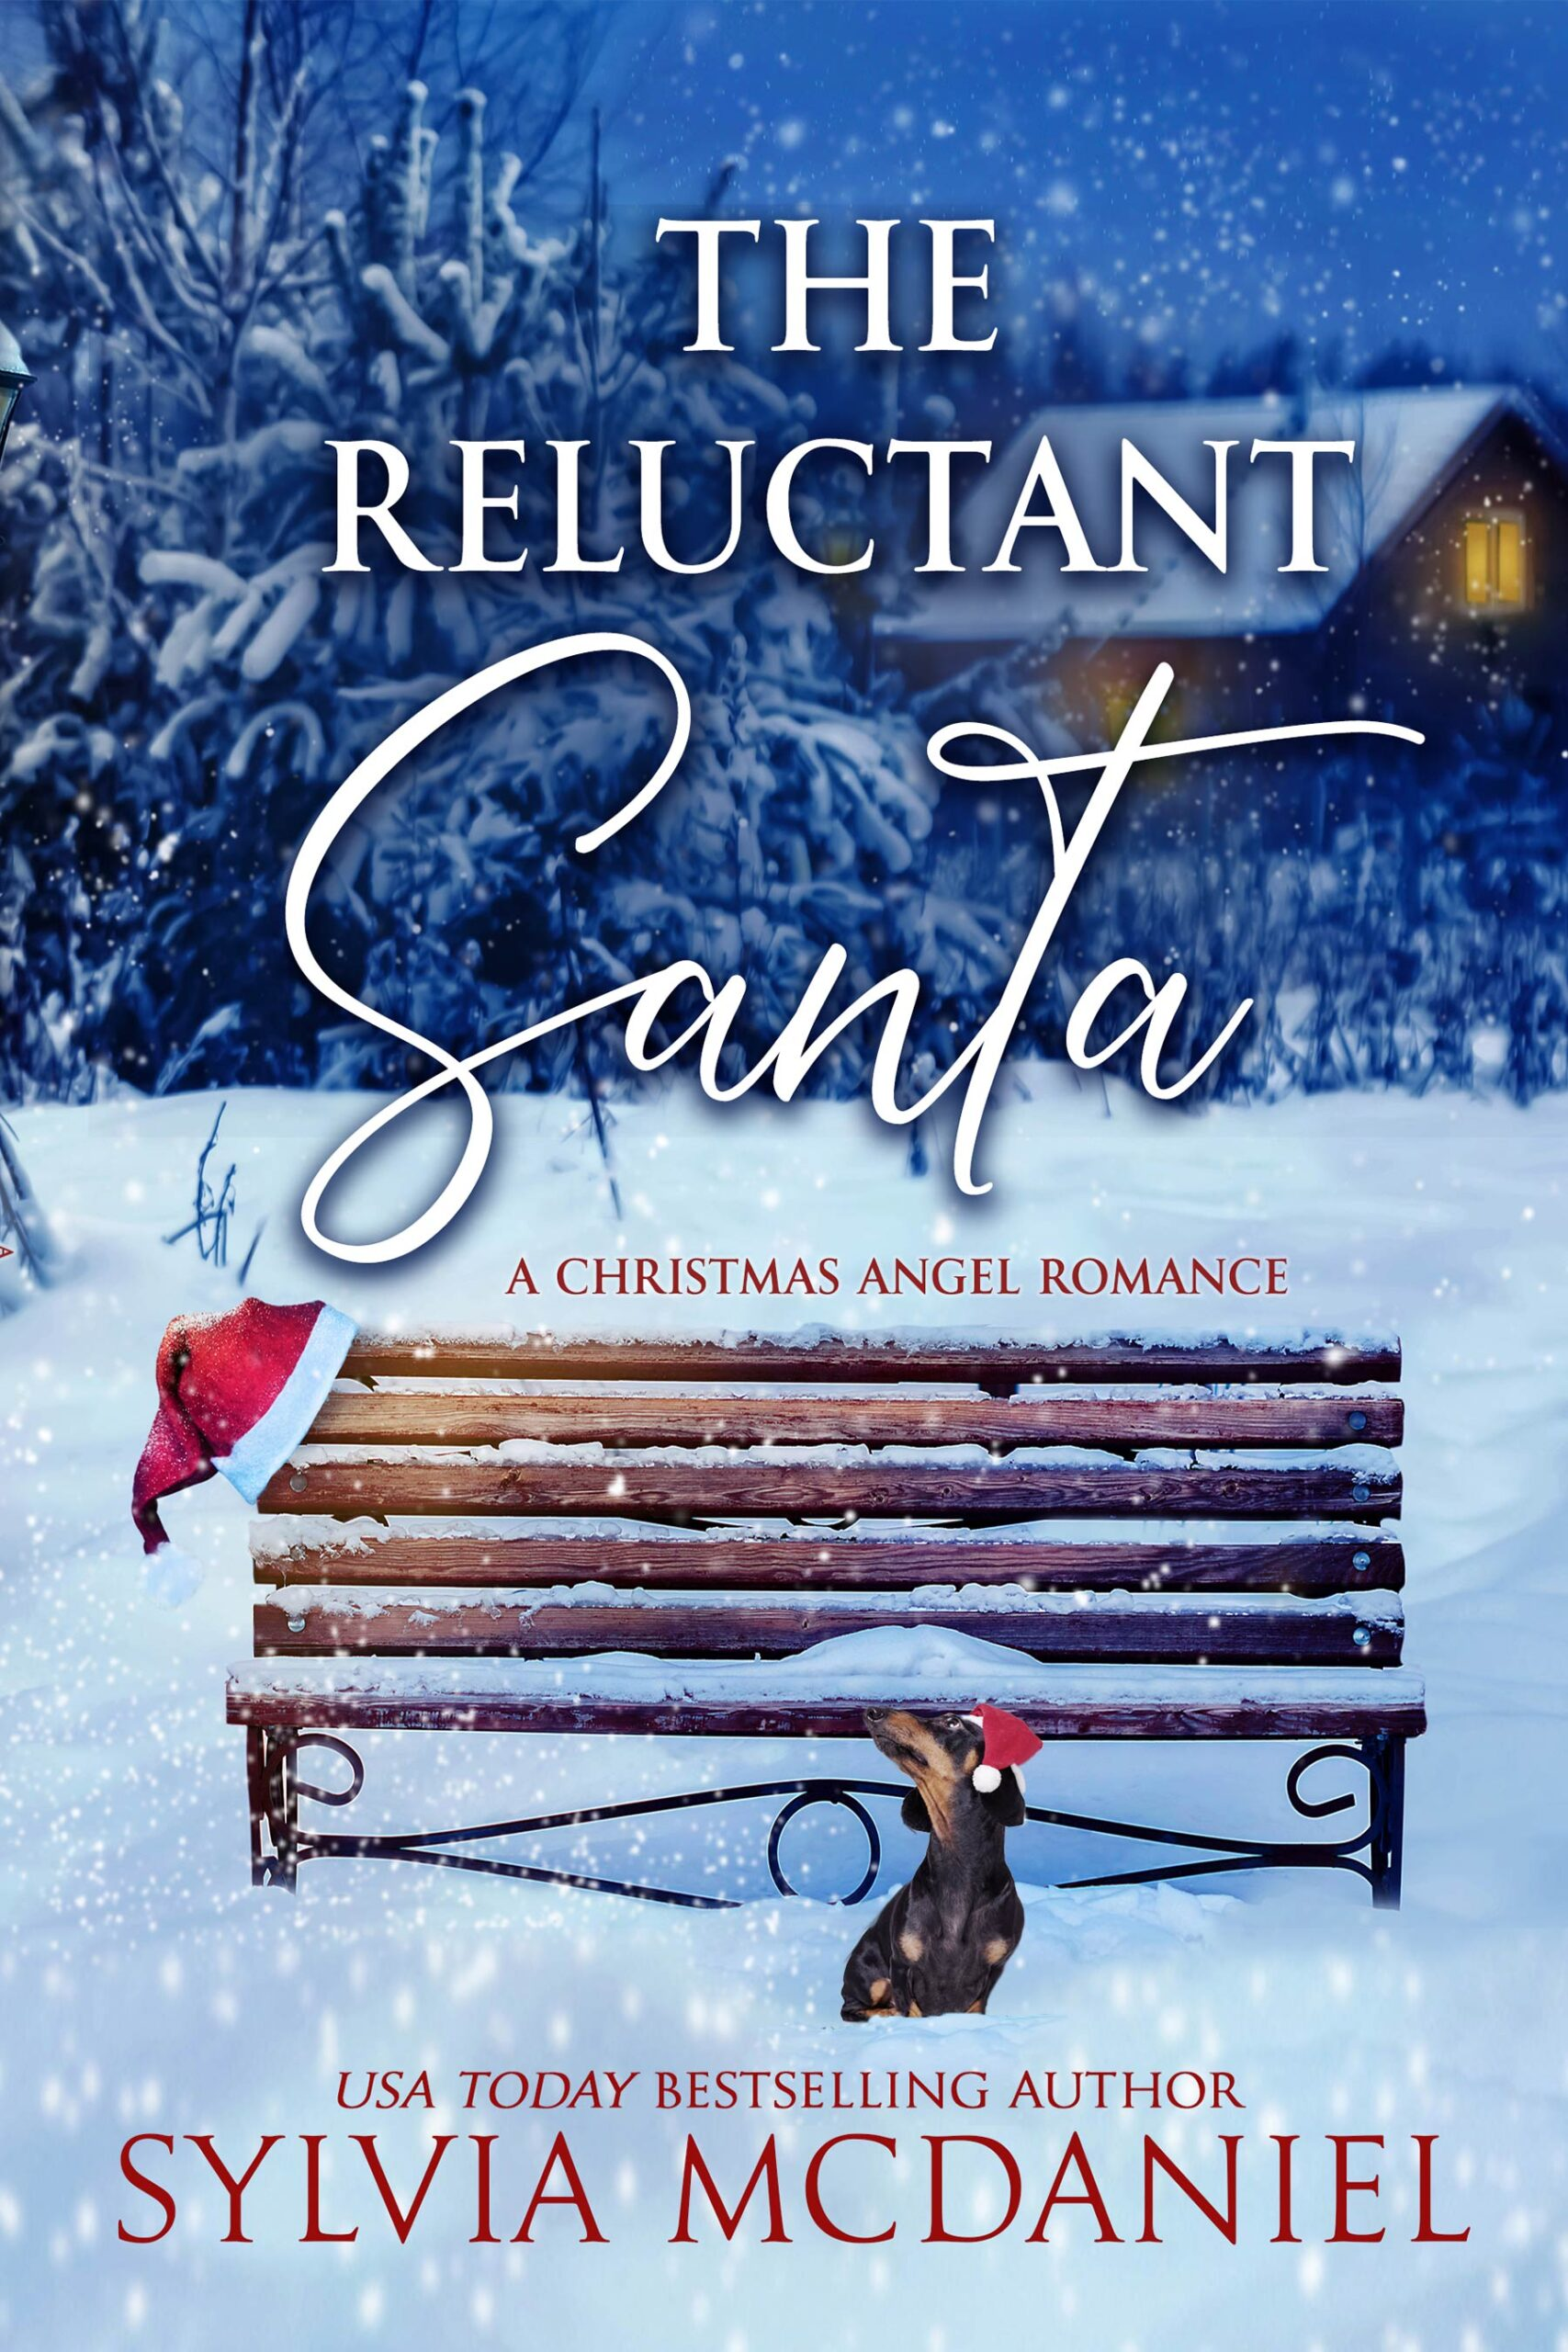 Cover of The Reluctant Santa by Sylvia McDaniel. An empty bench in the snow with a Santa hat on it.